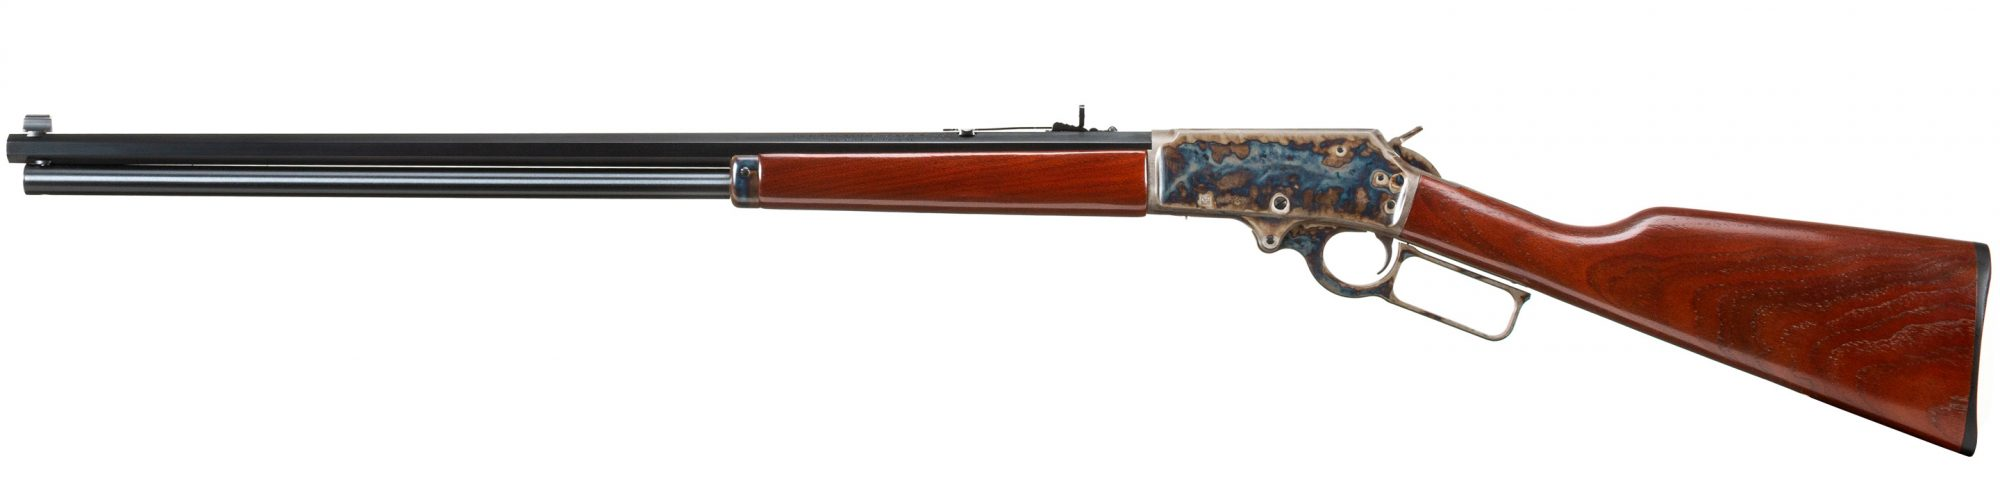 Photo of Marlin 1895CB chambered in .470 Turnbull, featuring Turnbull Restoration color case hardened action and forend cap